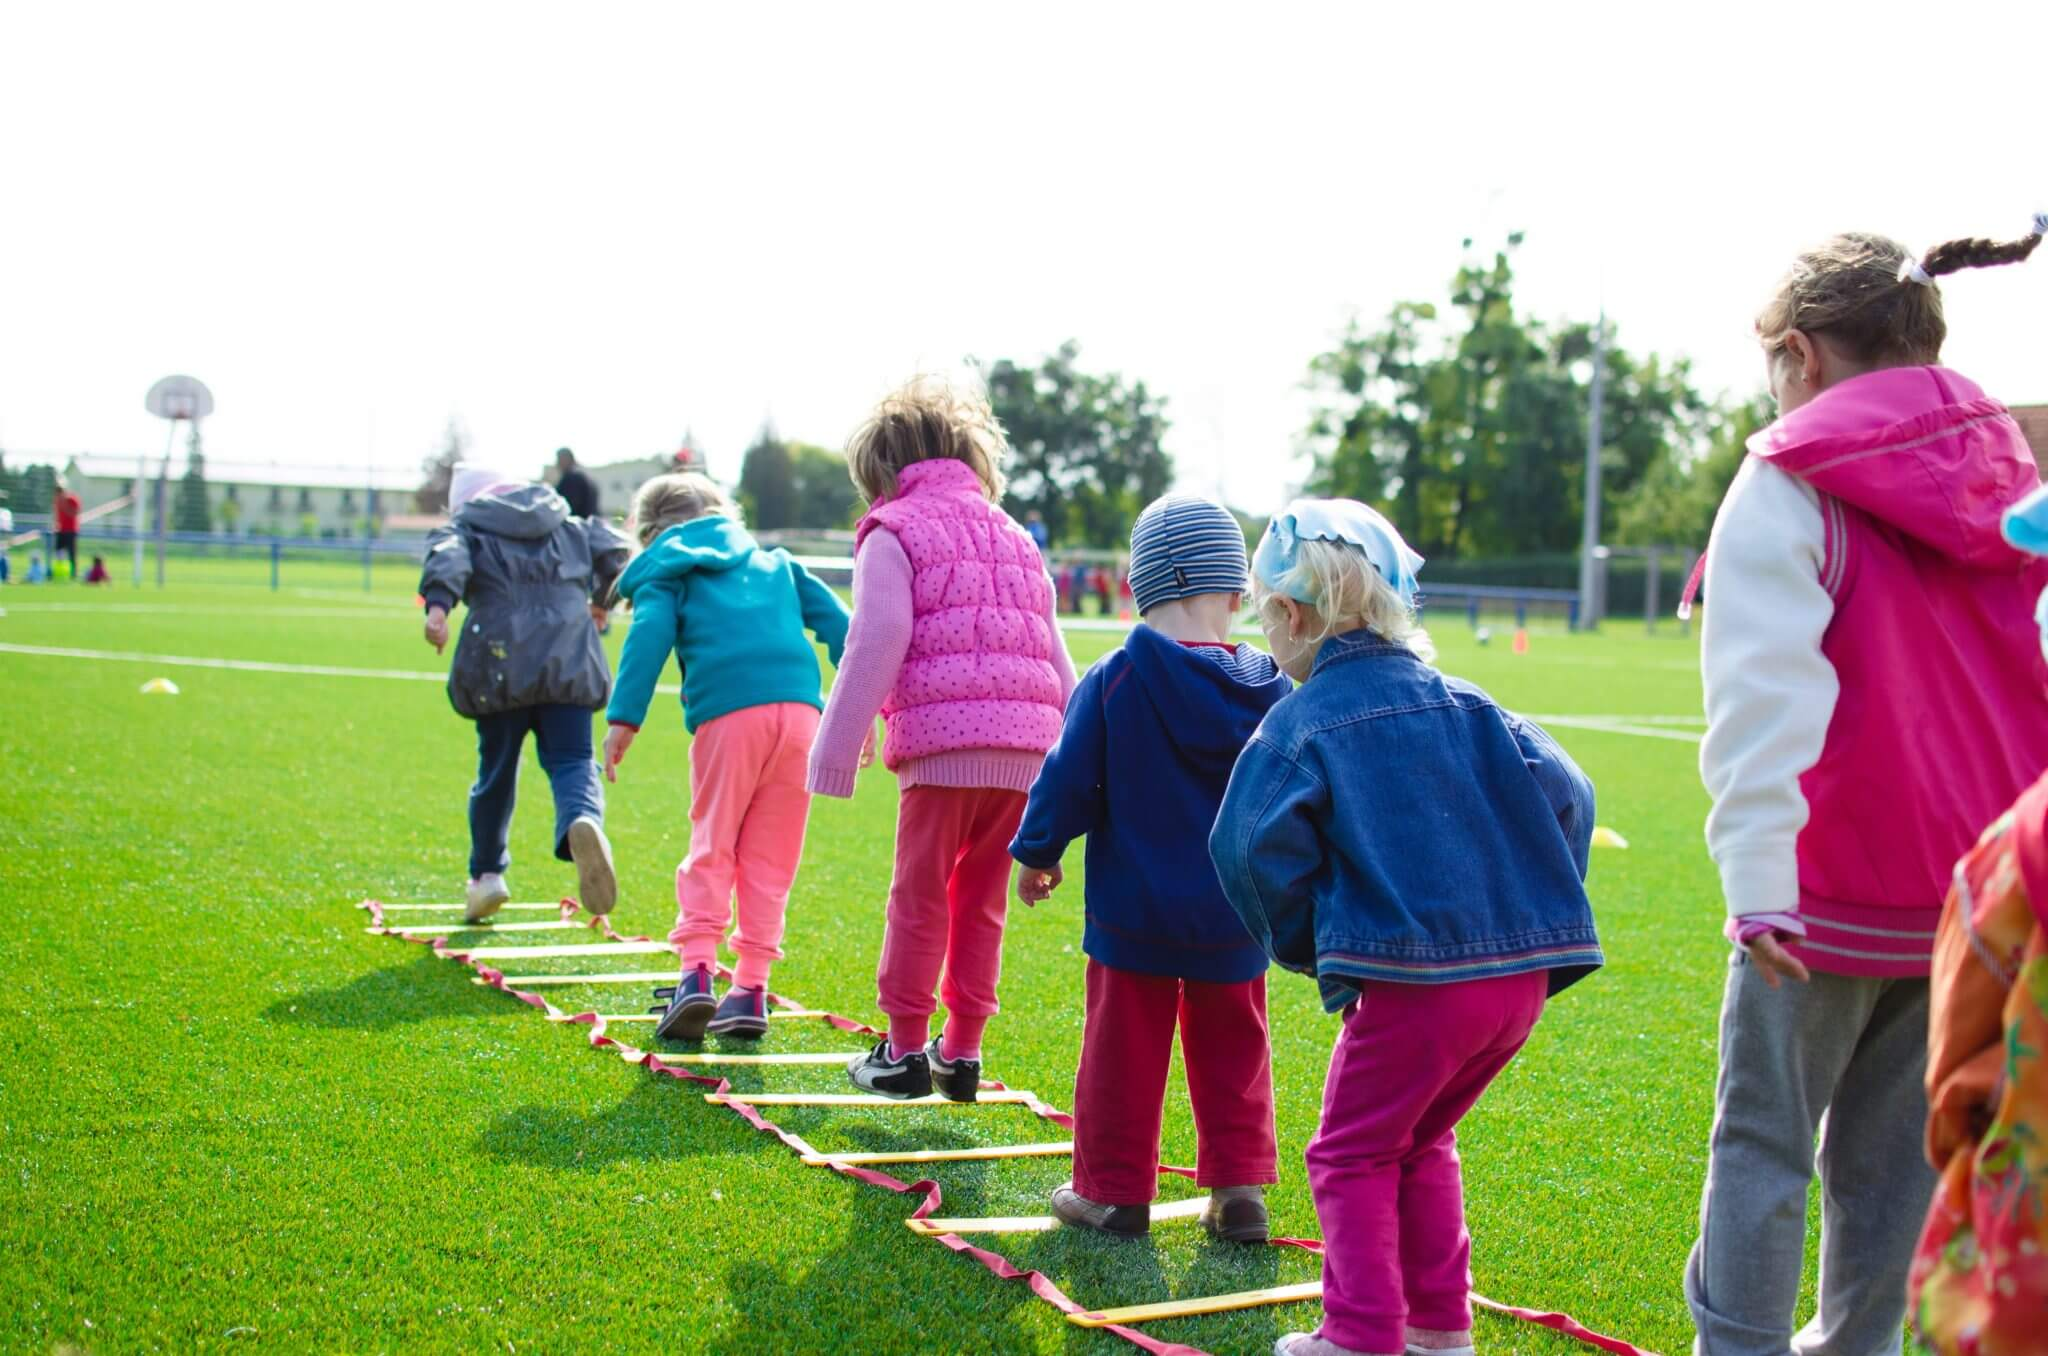 5 Ways to Increase Your Childcare Center Security